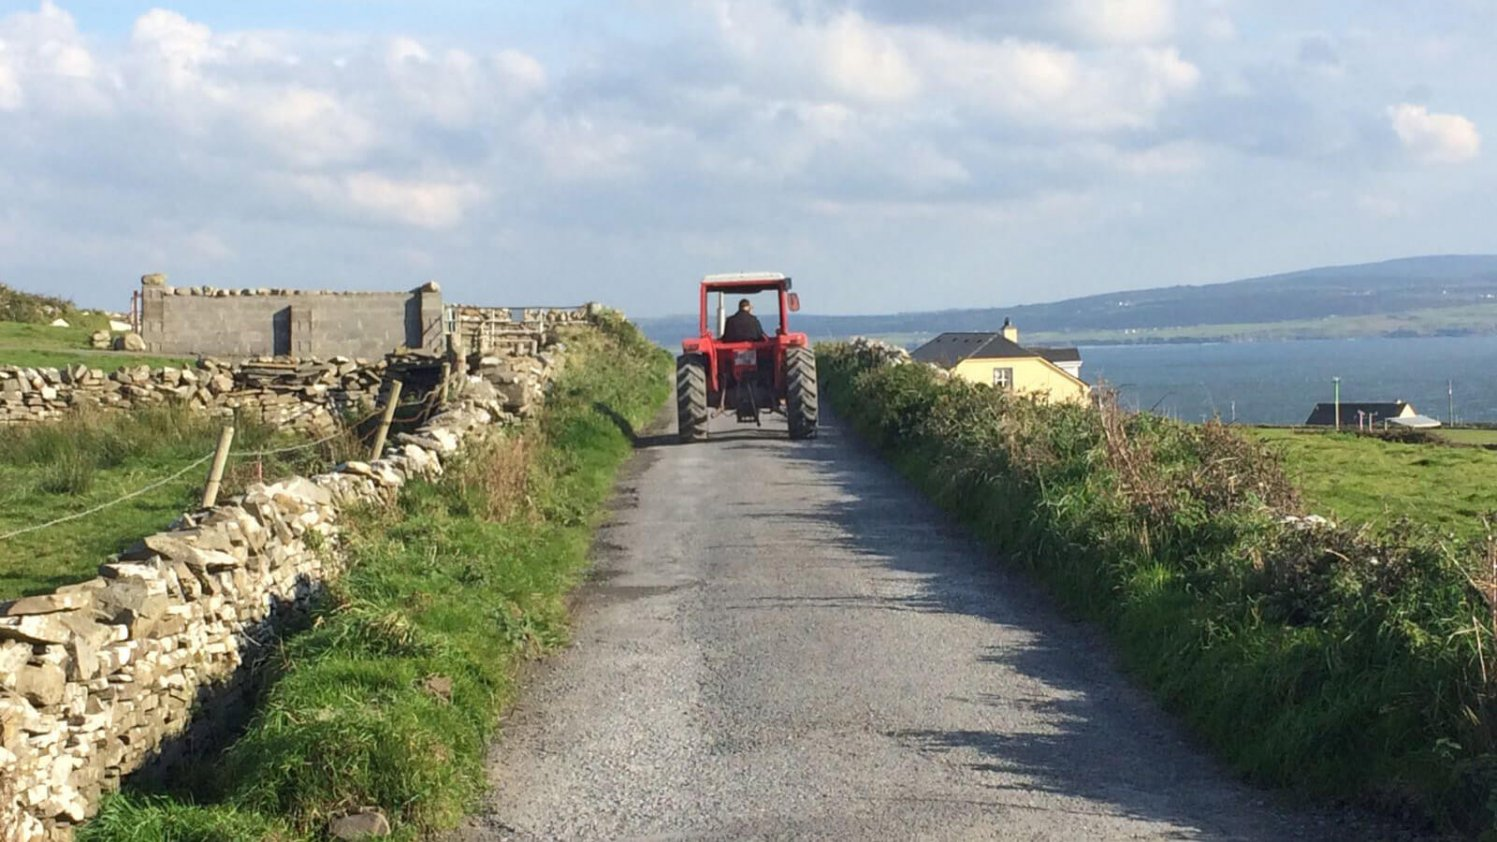 An empty, rural Irish laneway with a dry stone wall and red tractor driving into the distance